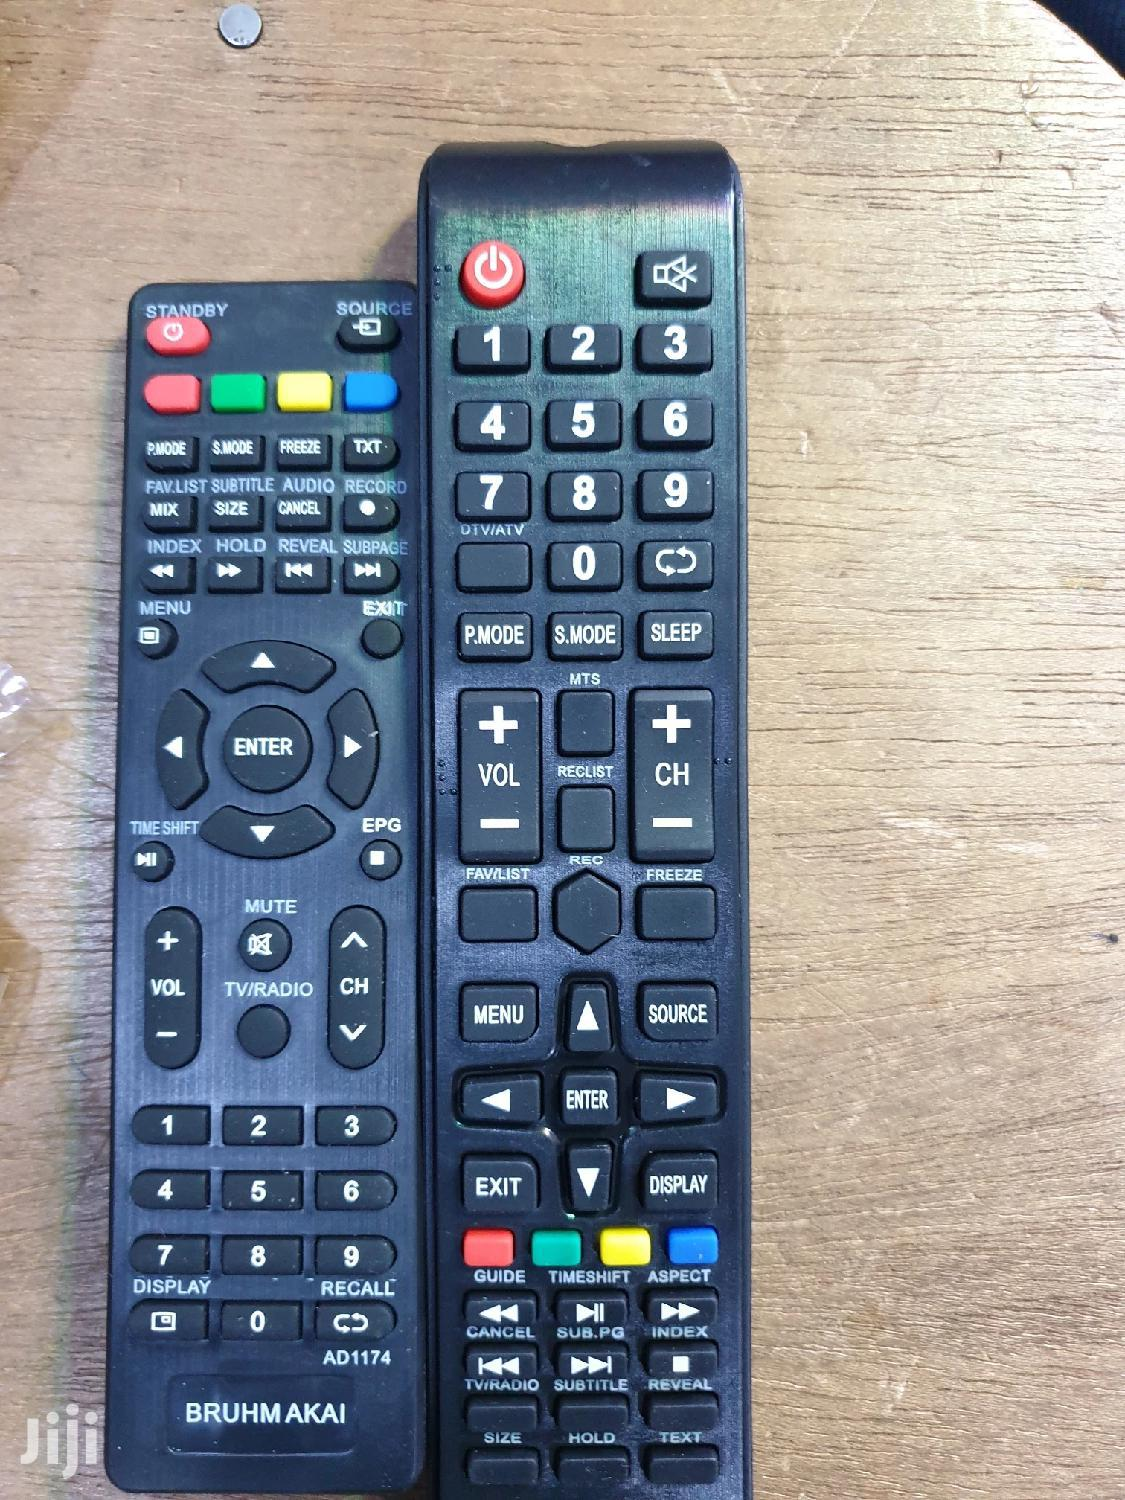 Bruhm TV Remote For Cool Price